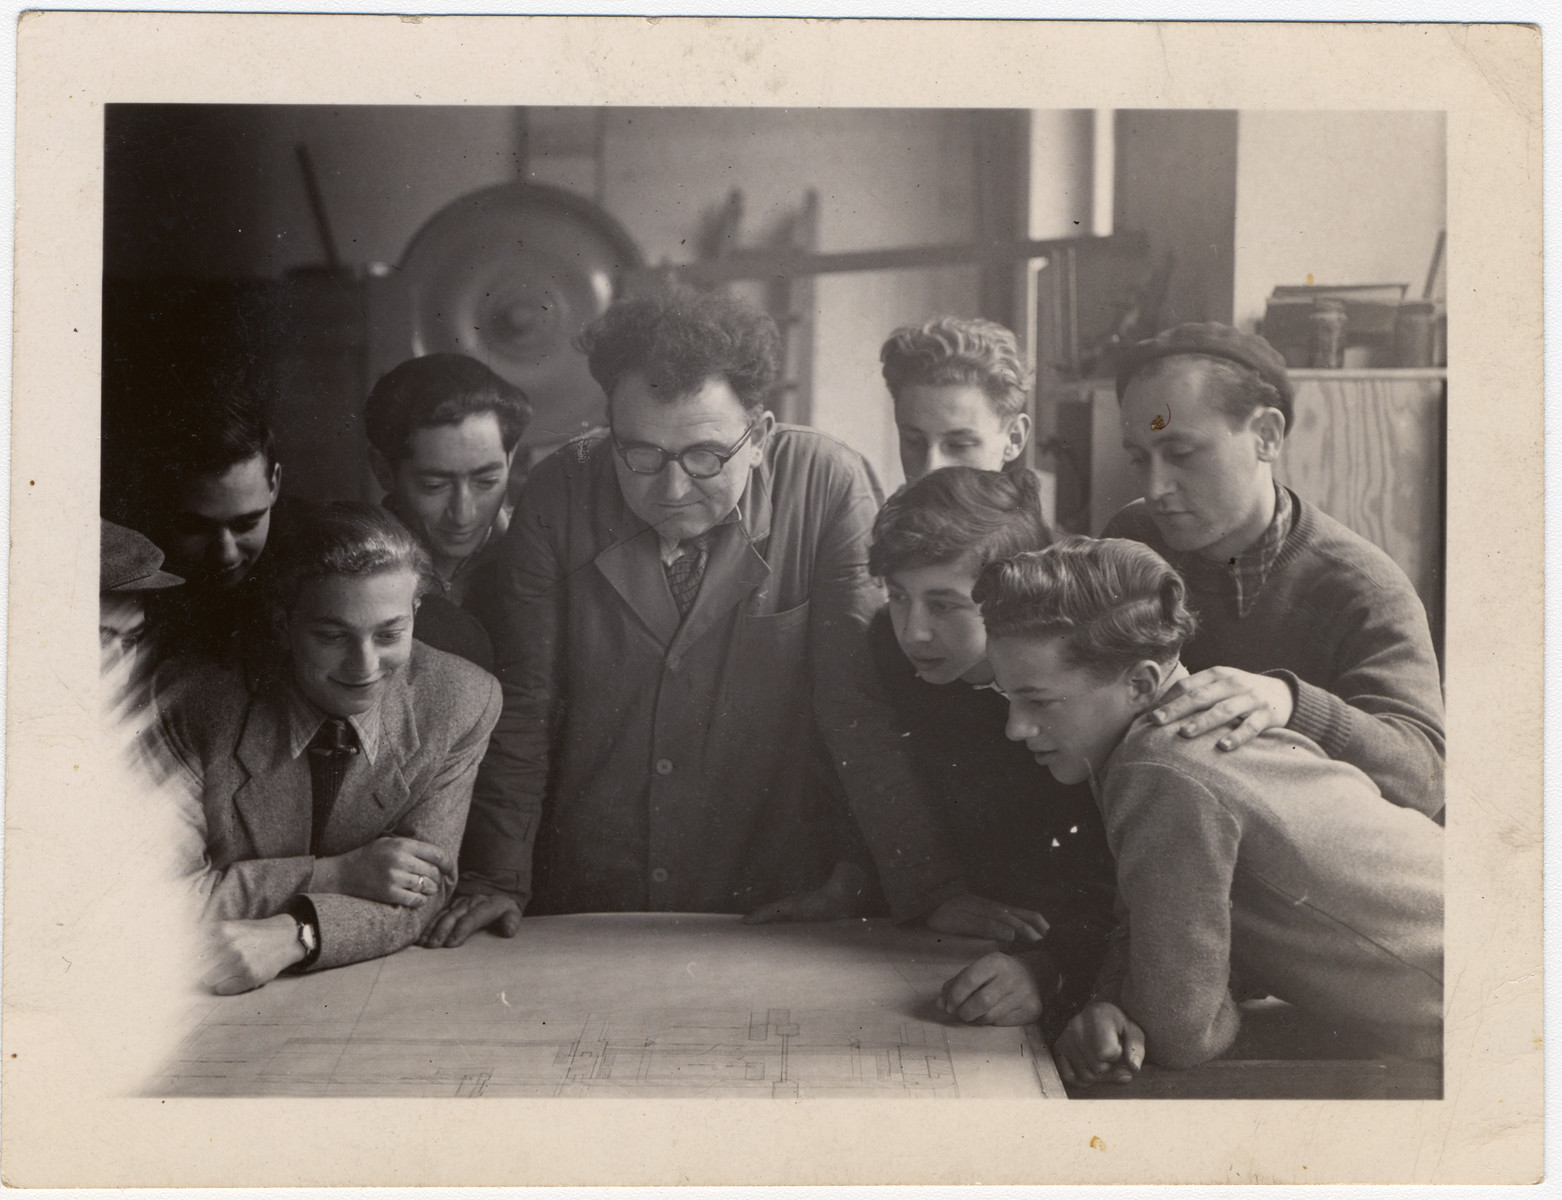 Jewish youth gather around a workshop table in an ORT vocational school in Geneva.  Those pictured include Alex, Bernard. Mr. Radice, Hermann and Moshe.